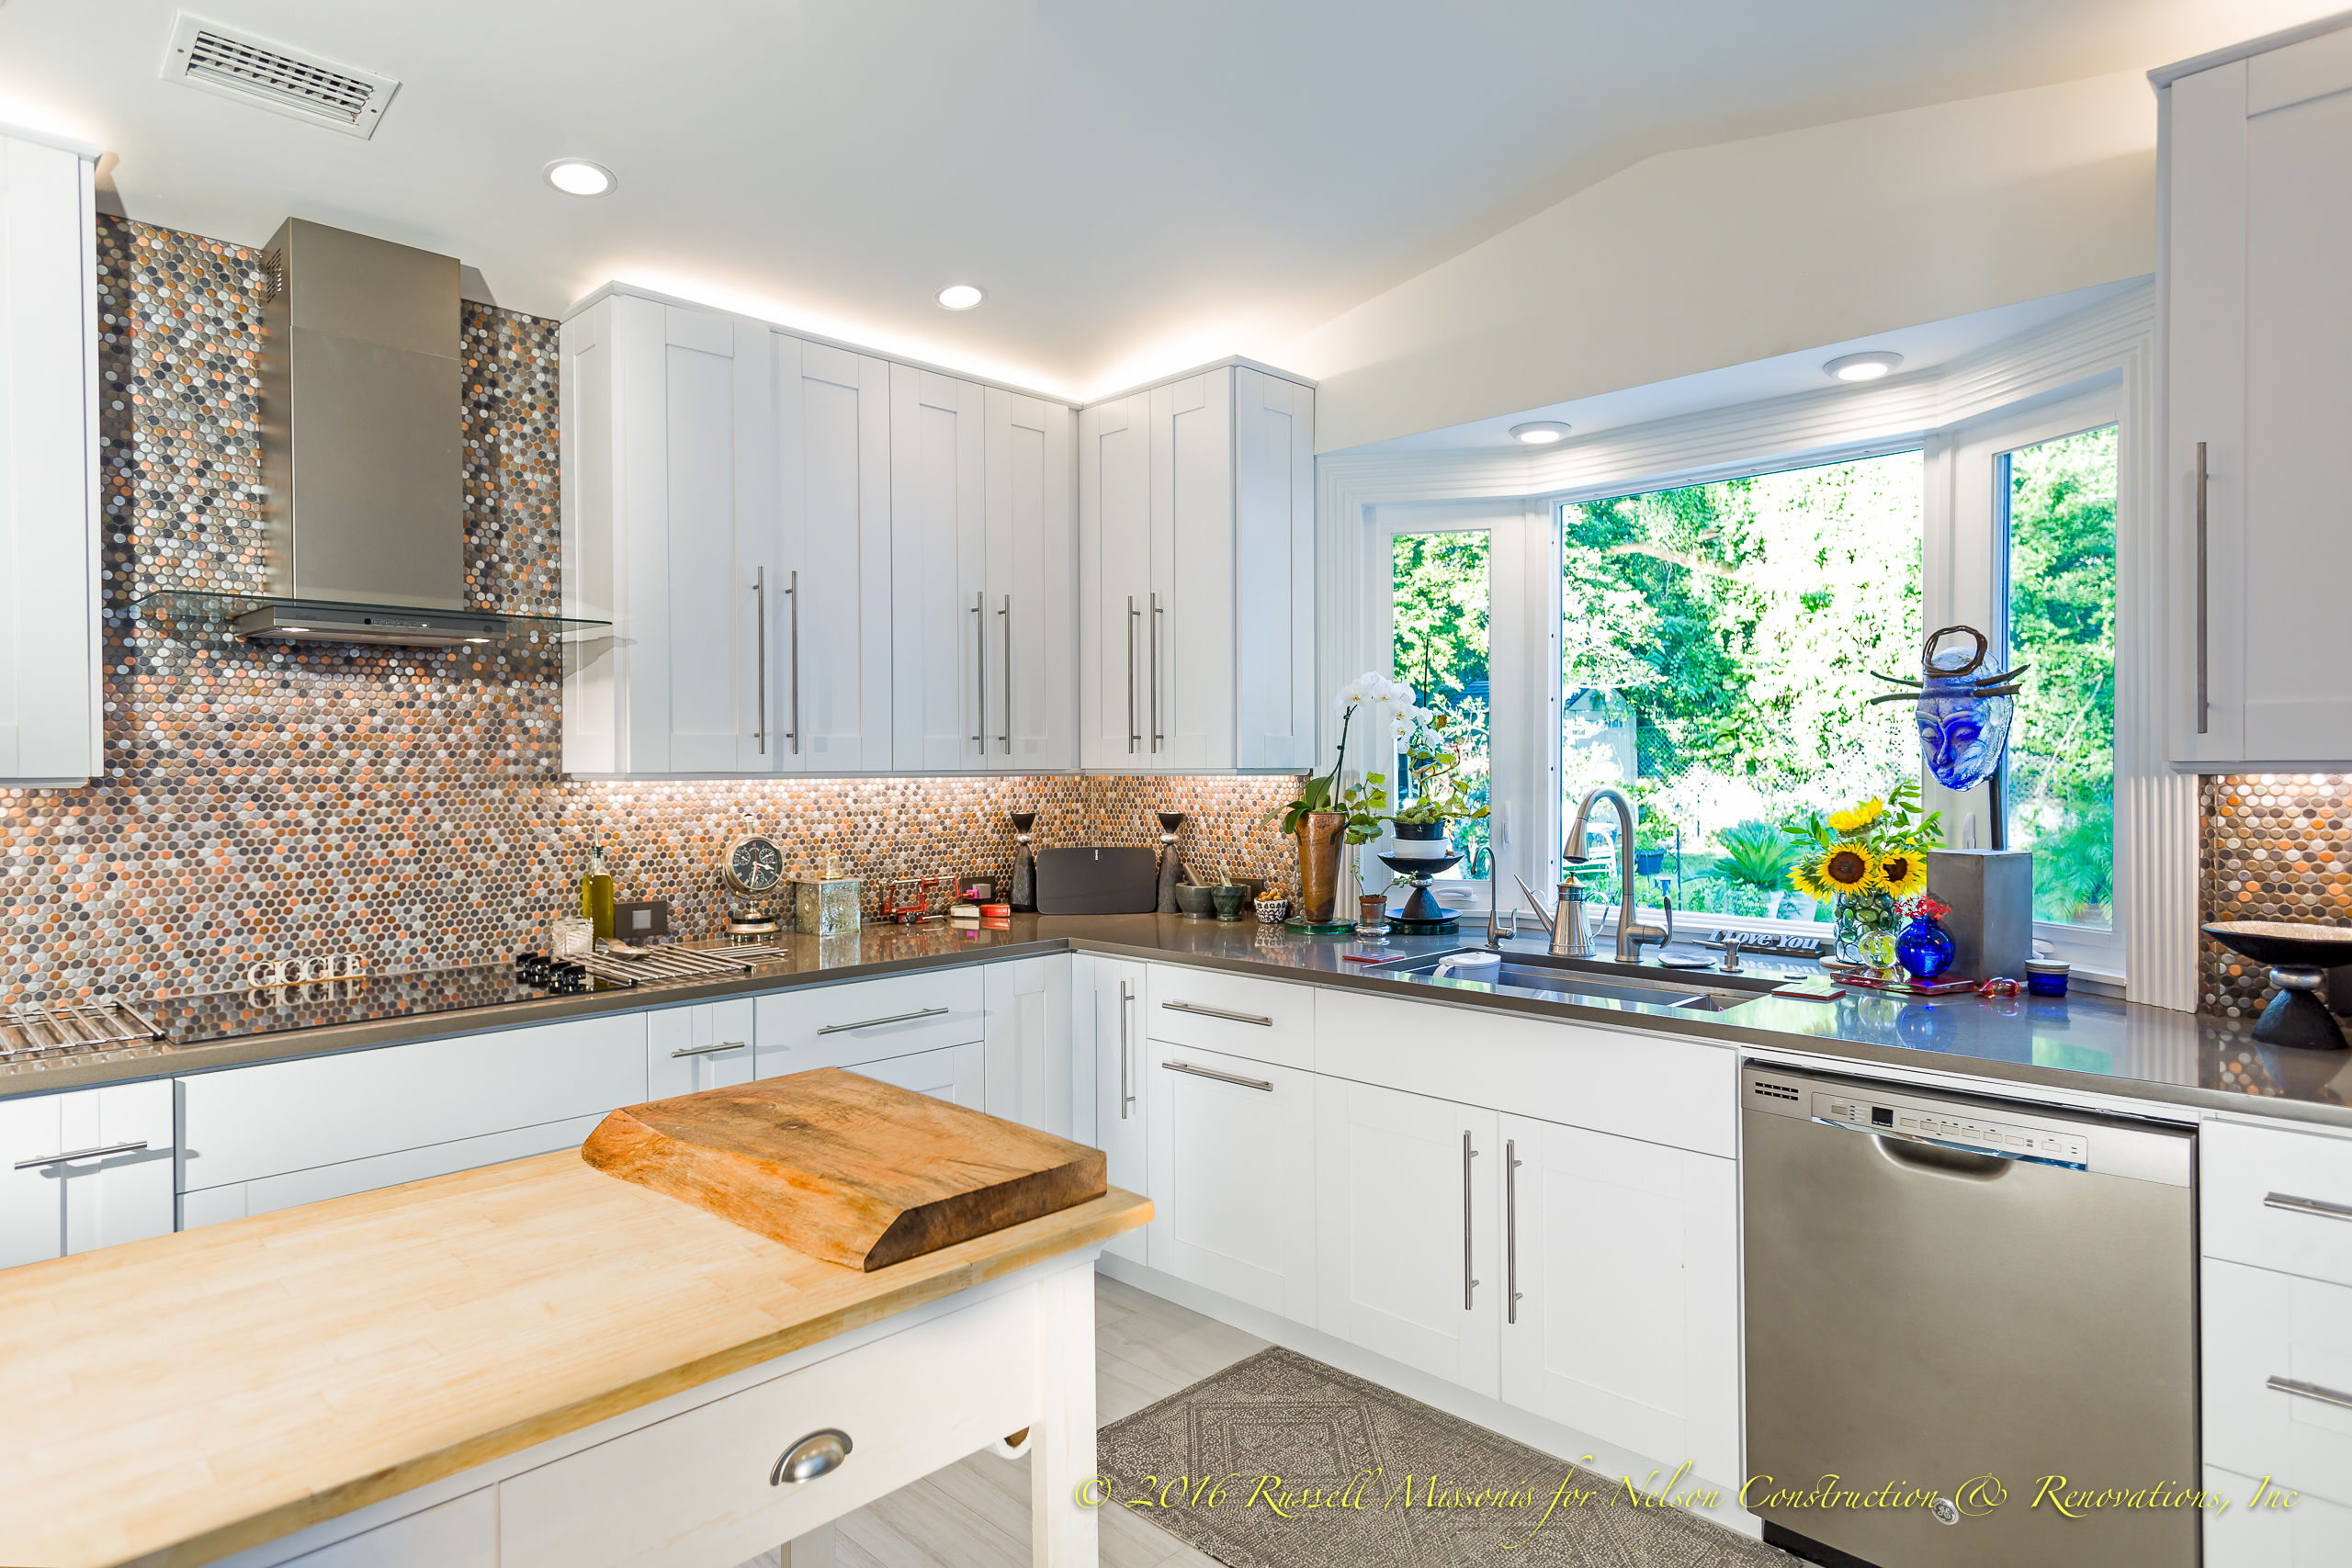 Florida kitchen archives nelson construction for Reliable remodeling